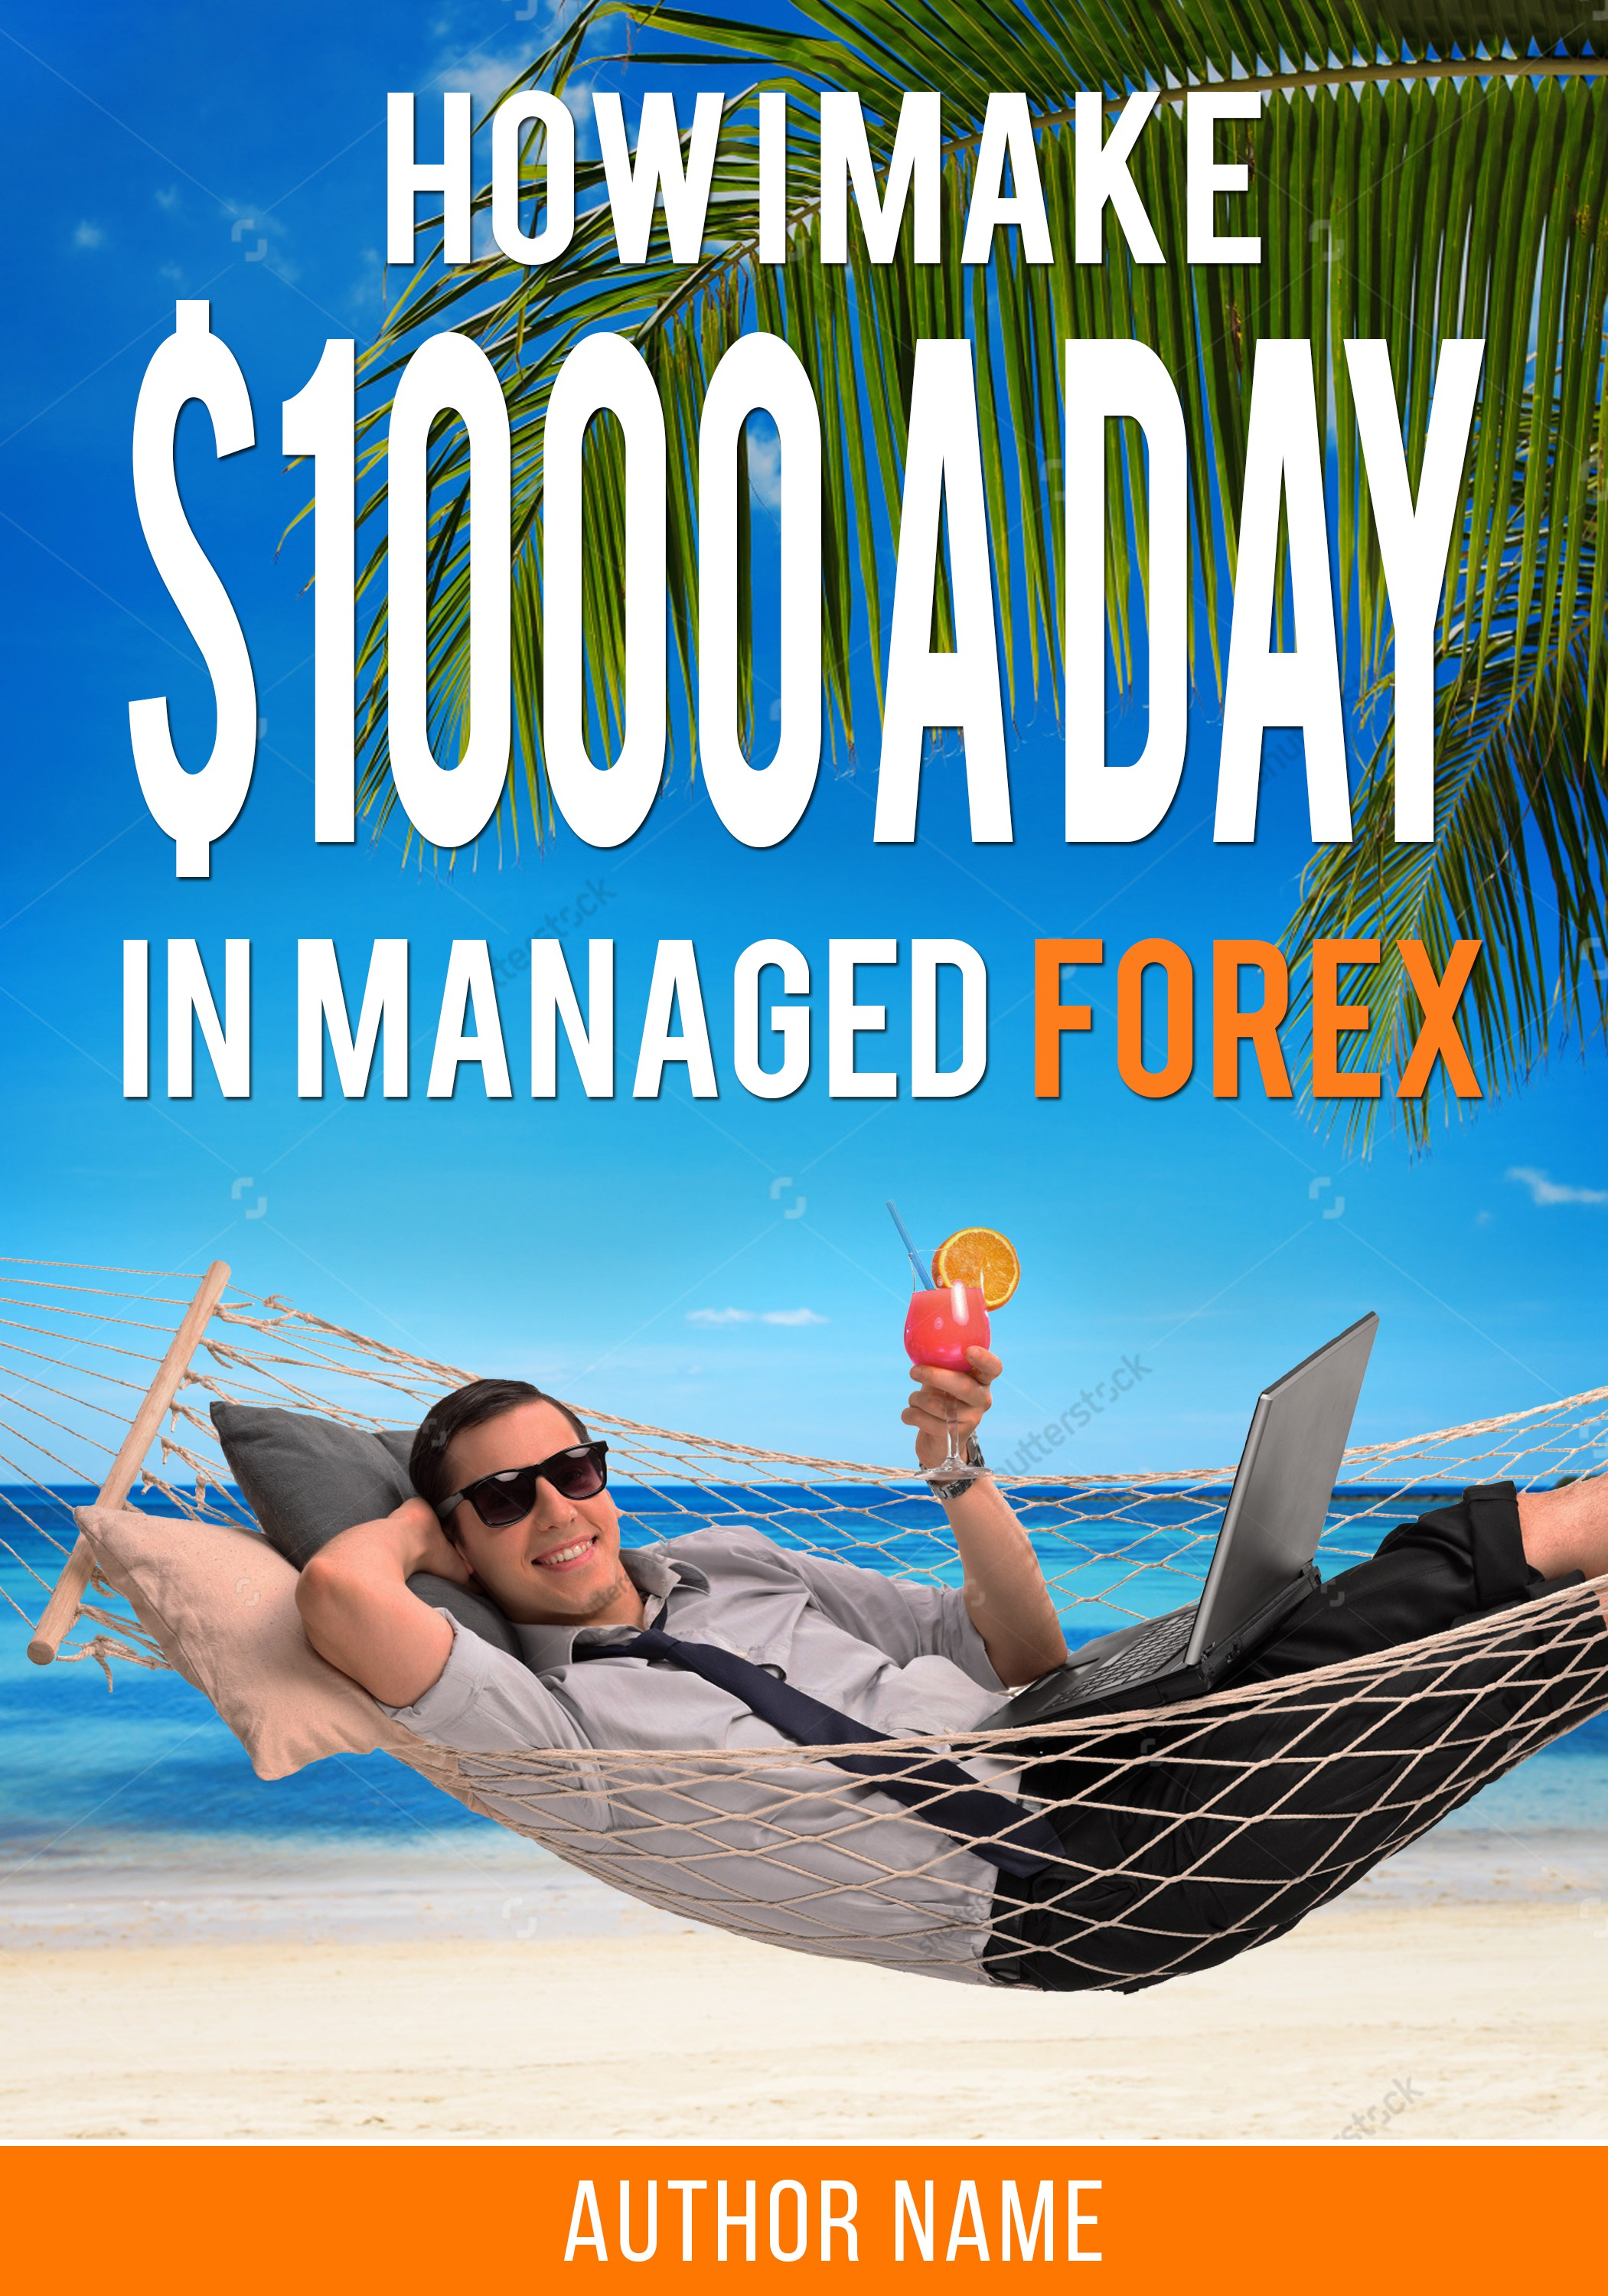 """Create an ebook cover page for """"how I make $1000 a day in managed forex"""""""